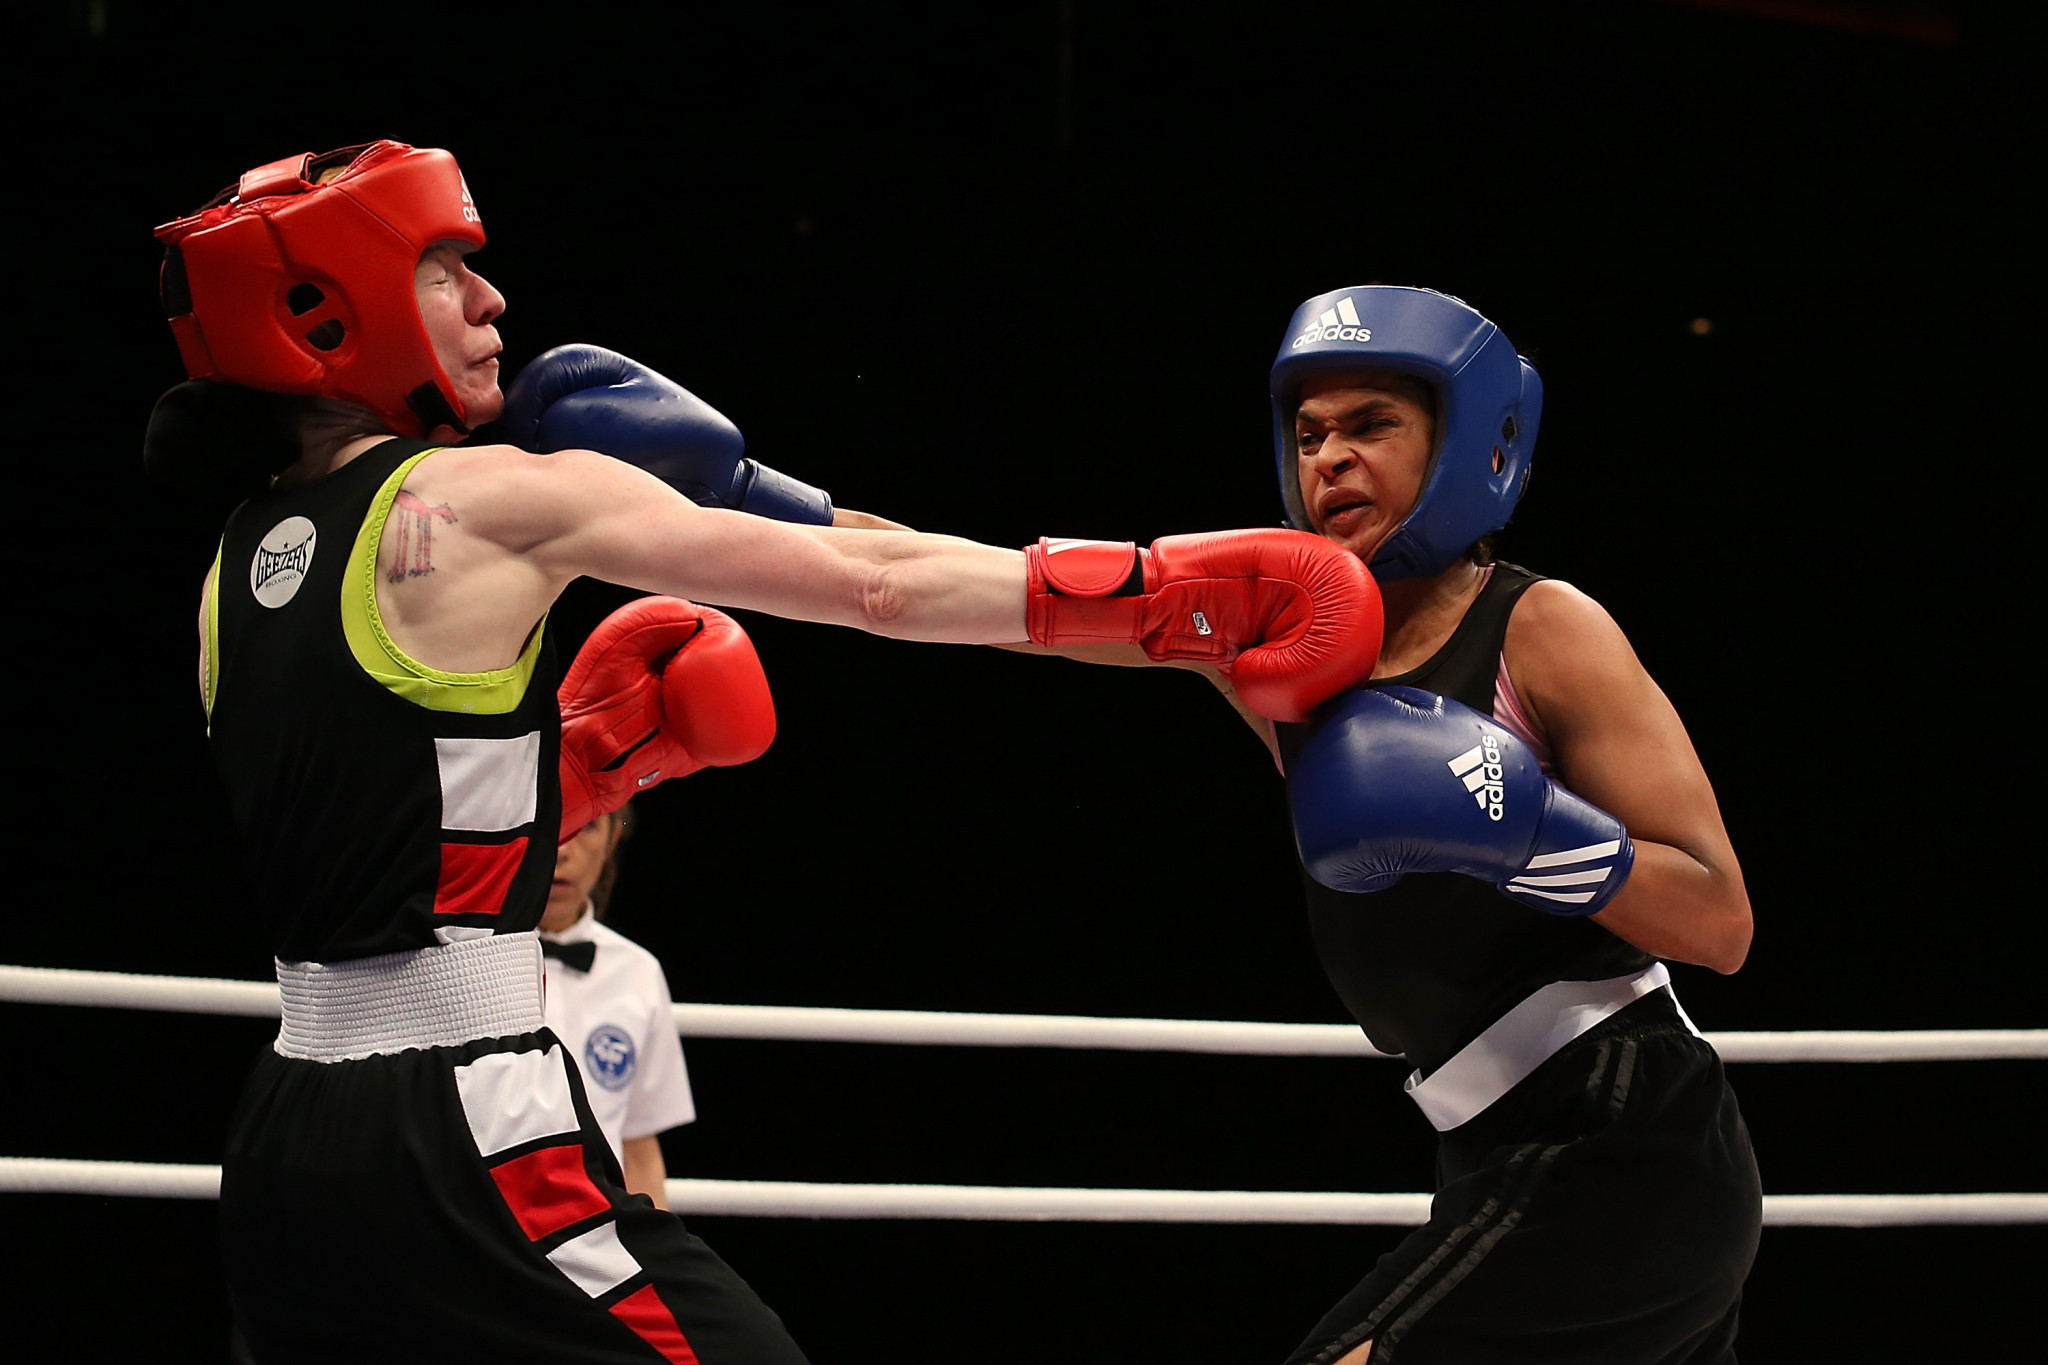 Somalian star Ali reaches quarter-finals at African Olympic boxing qualifier